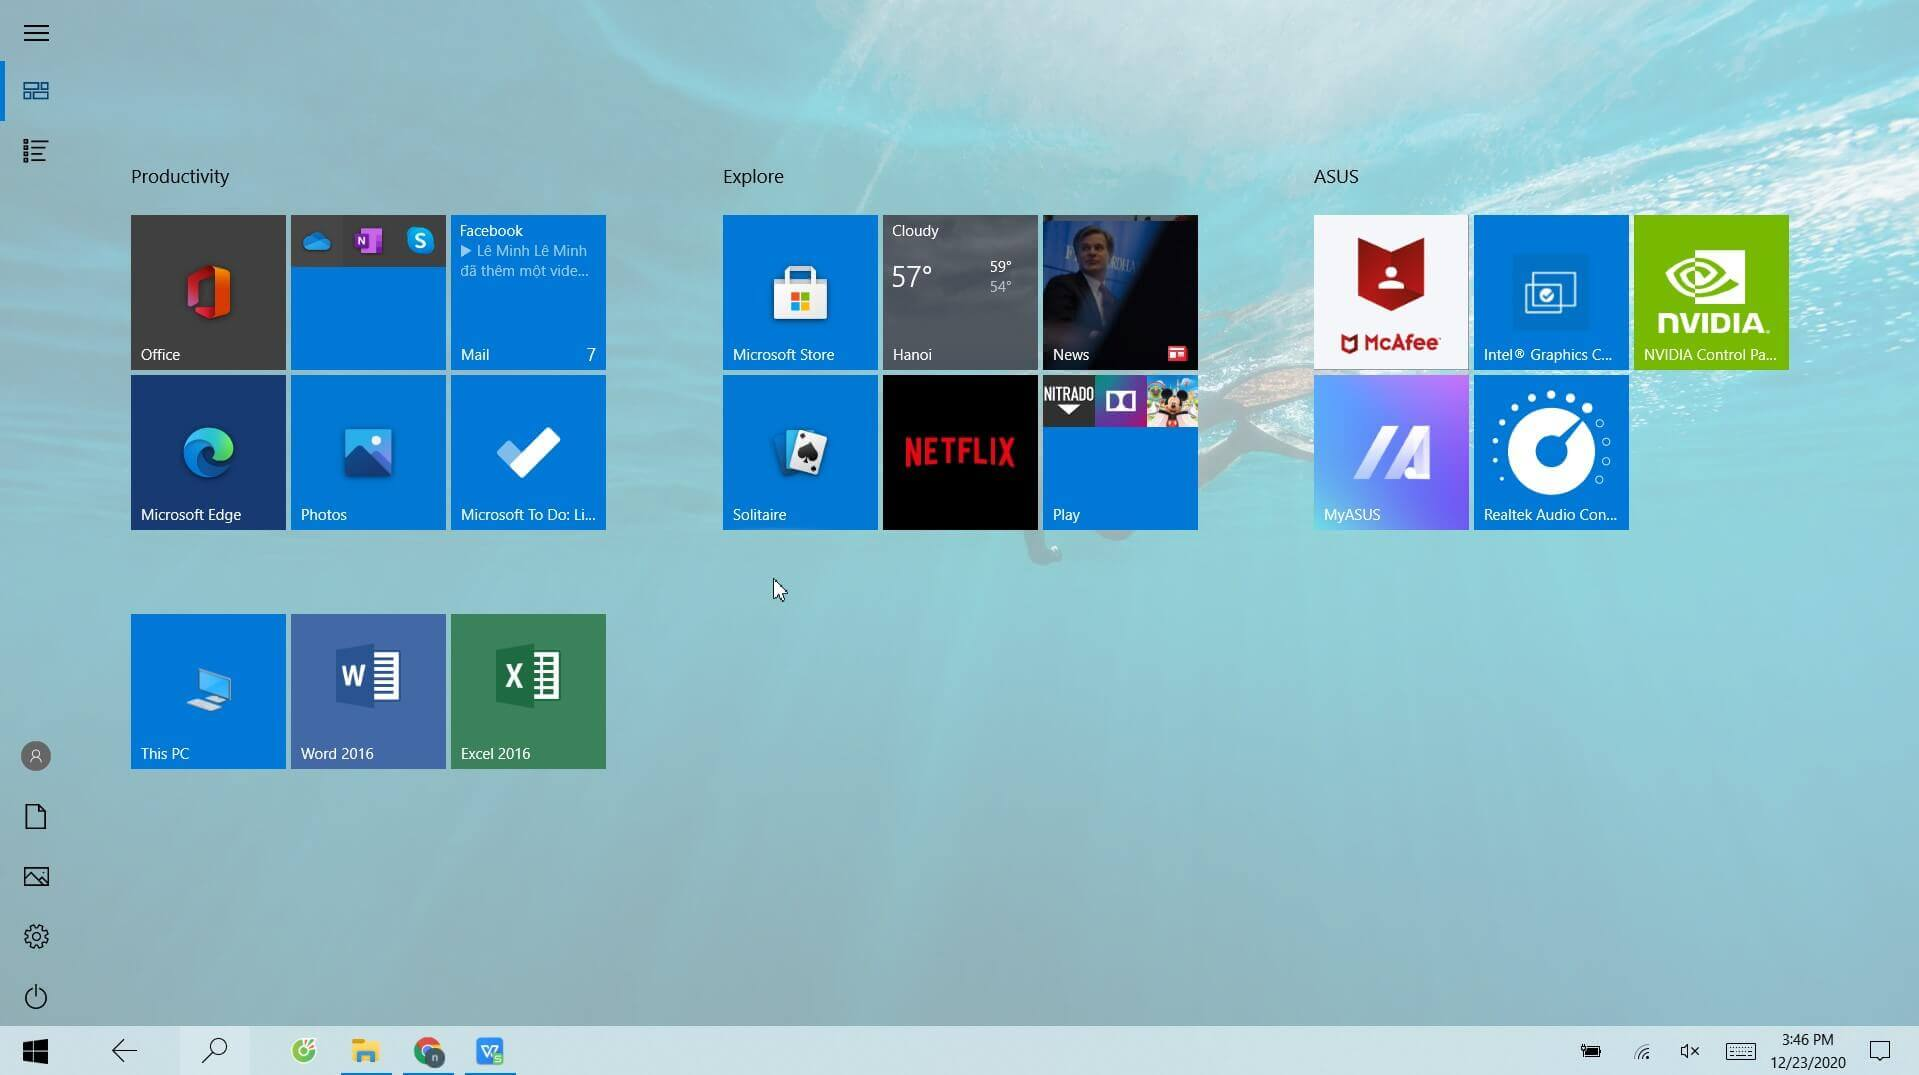 Windows 10 Start Menu: How To Restore that of Previous Versions - Step 1